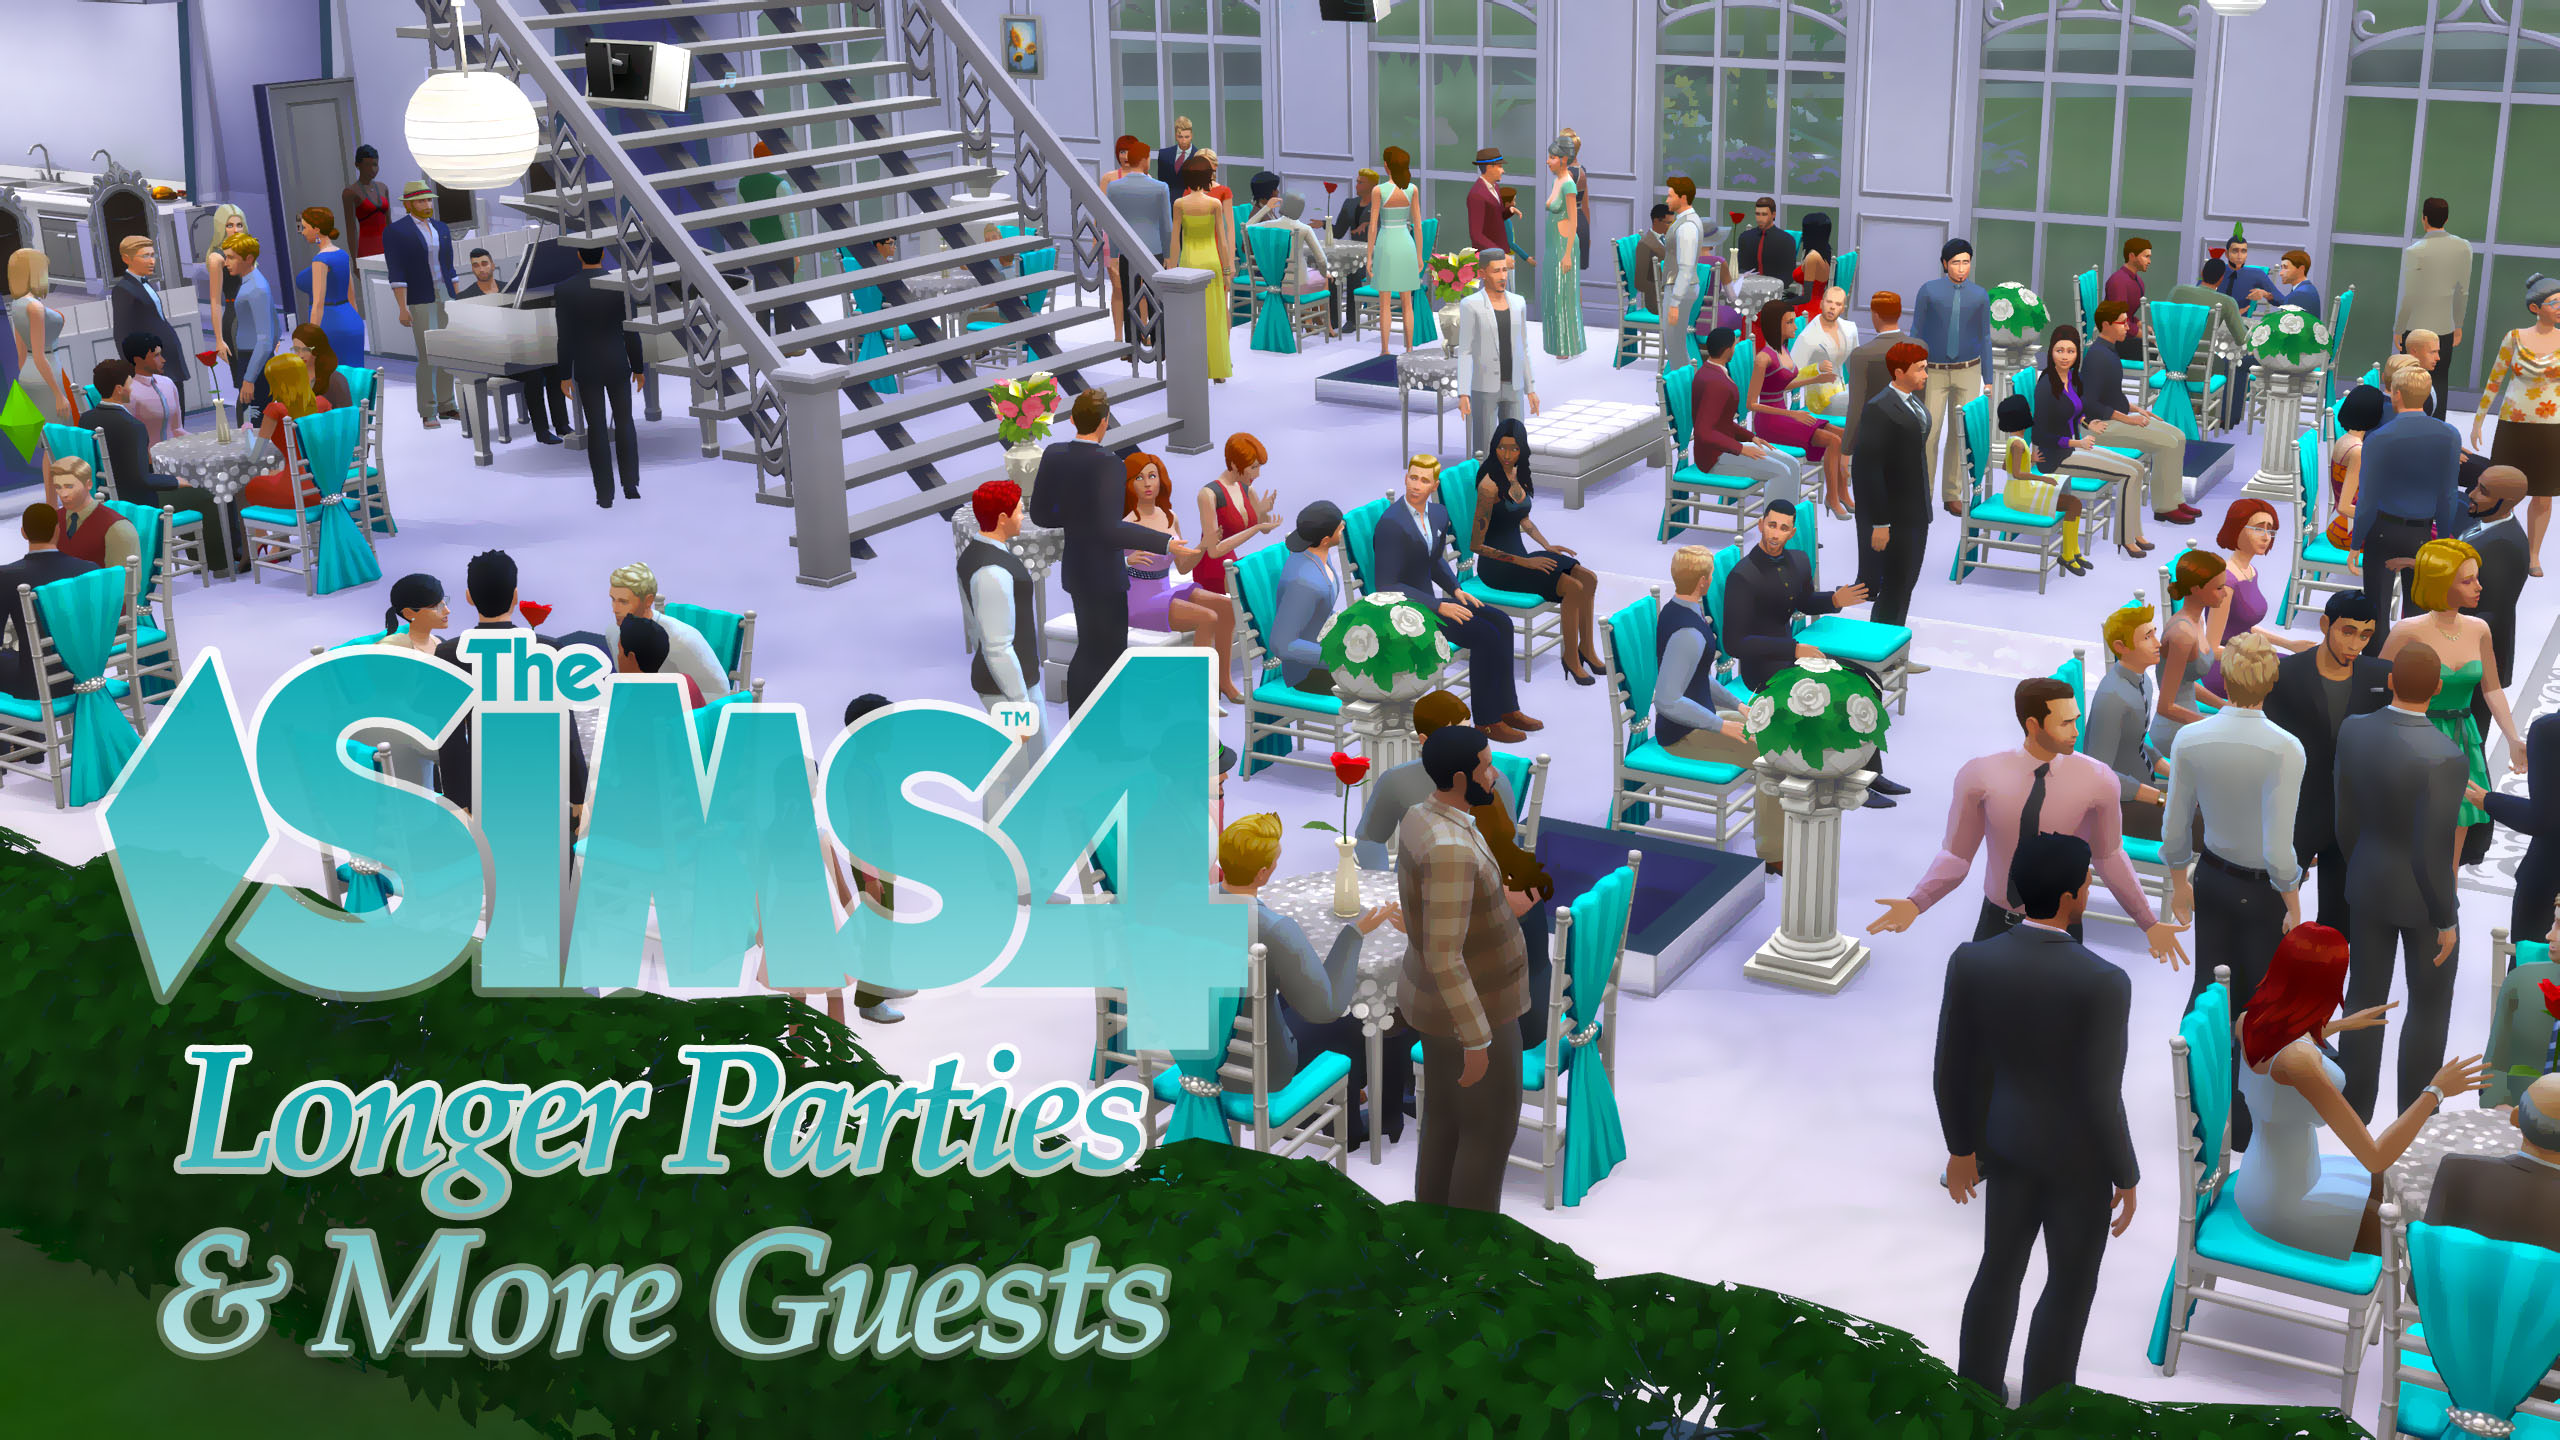 Longer Parties & More Guests by weerbesu